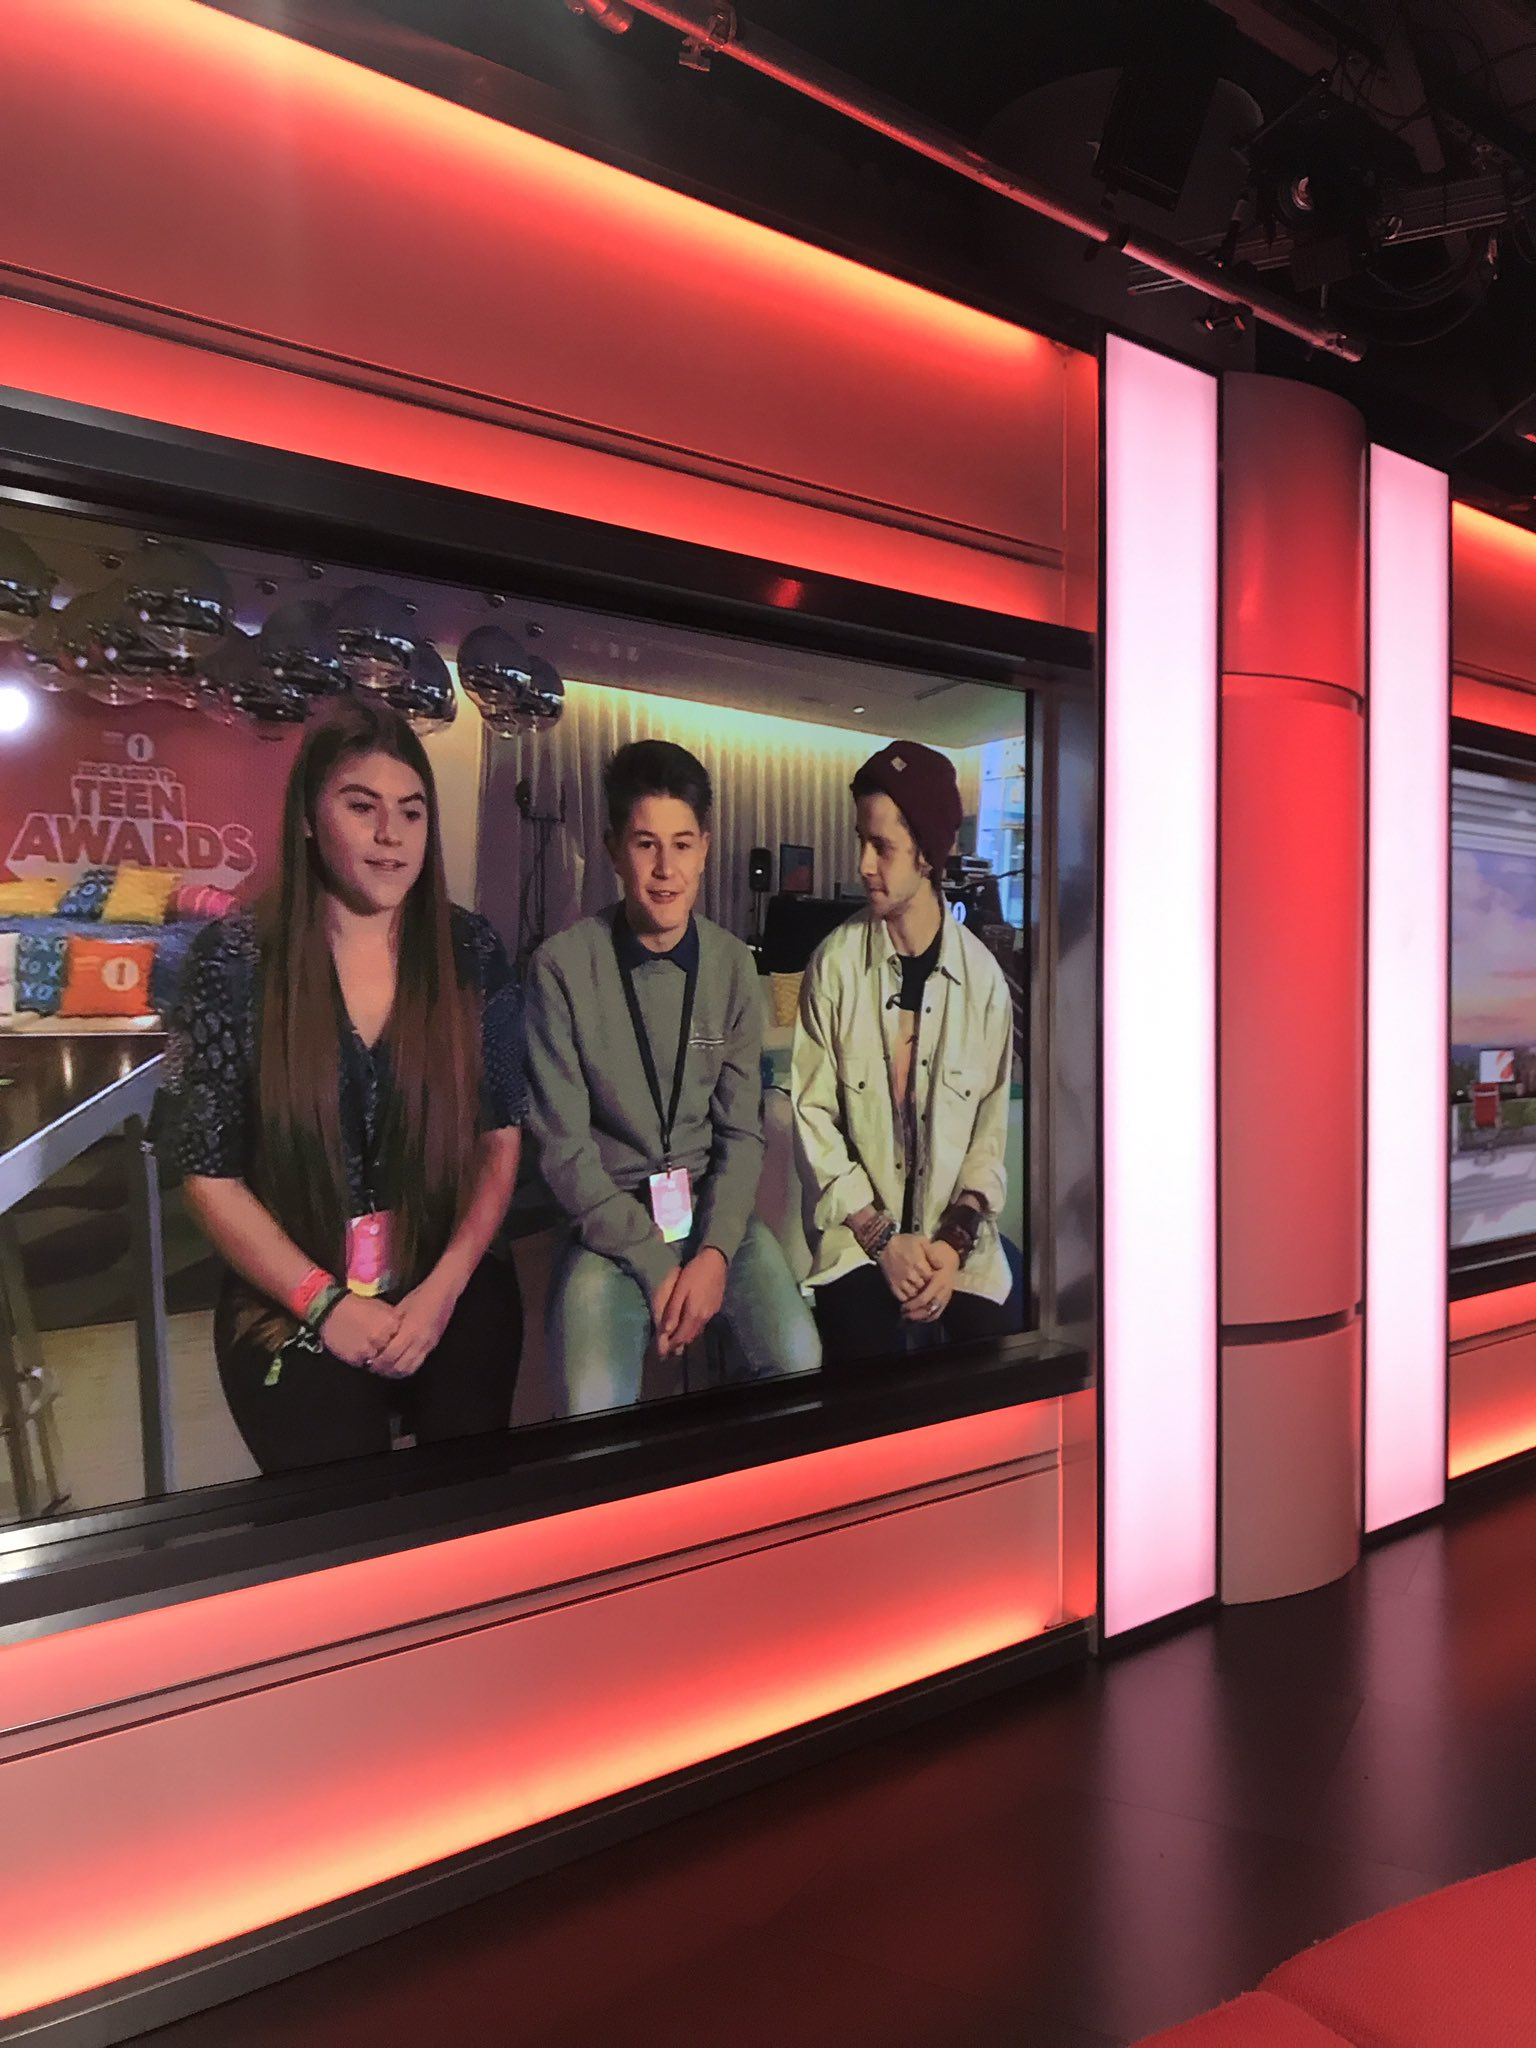 Talking @BBCR1 #R1TeenAwards @BBCBreakfast with Teen Heroes Olly and Holly and @celspellman https://t.co/W7nXa5WJwc